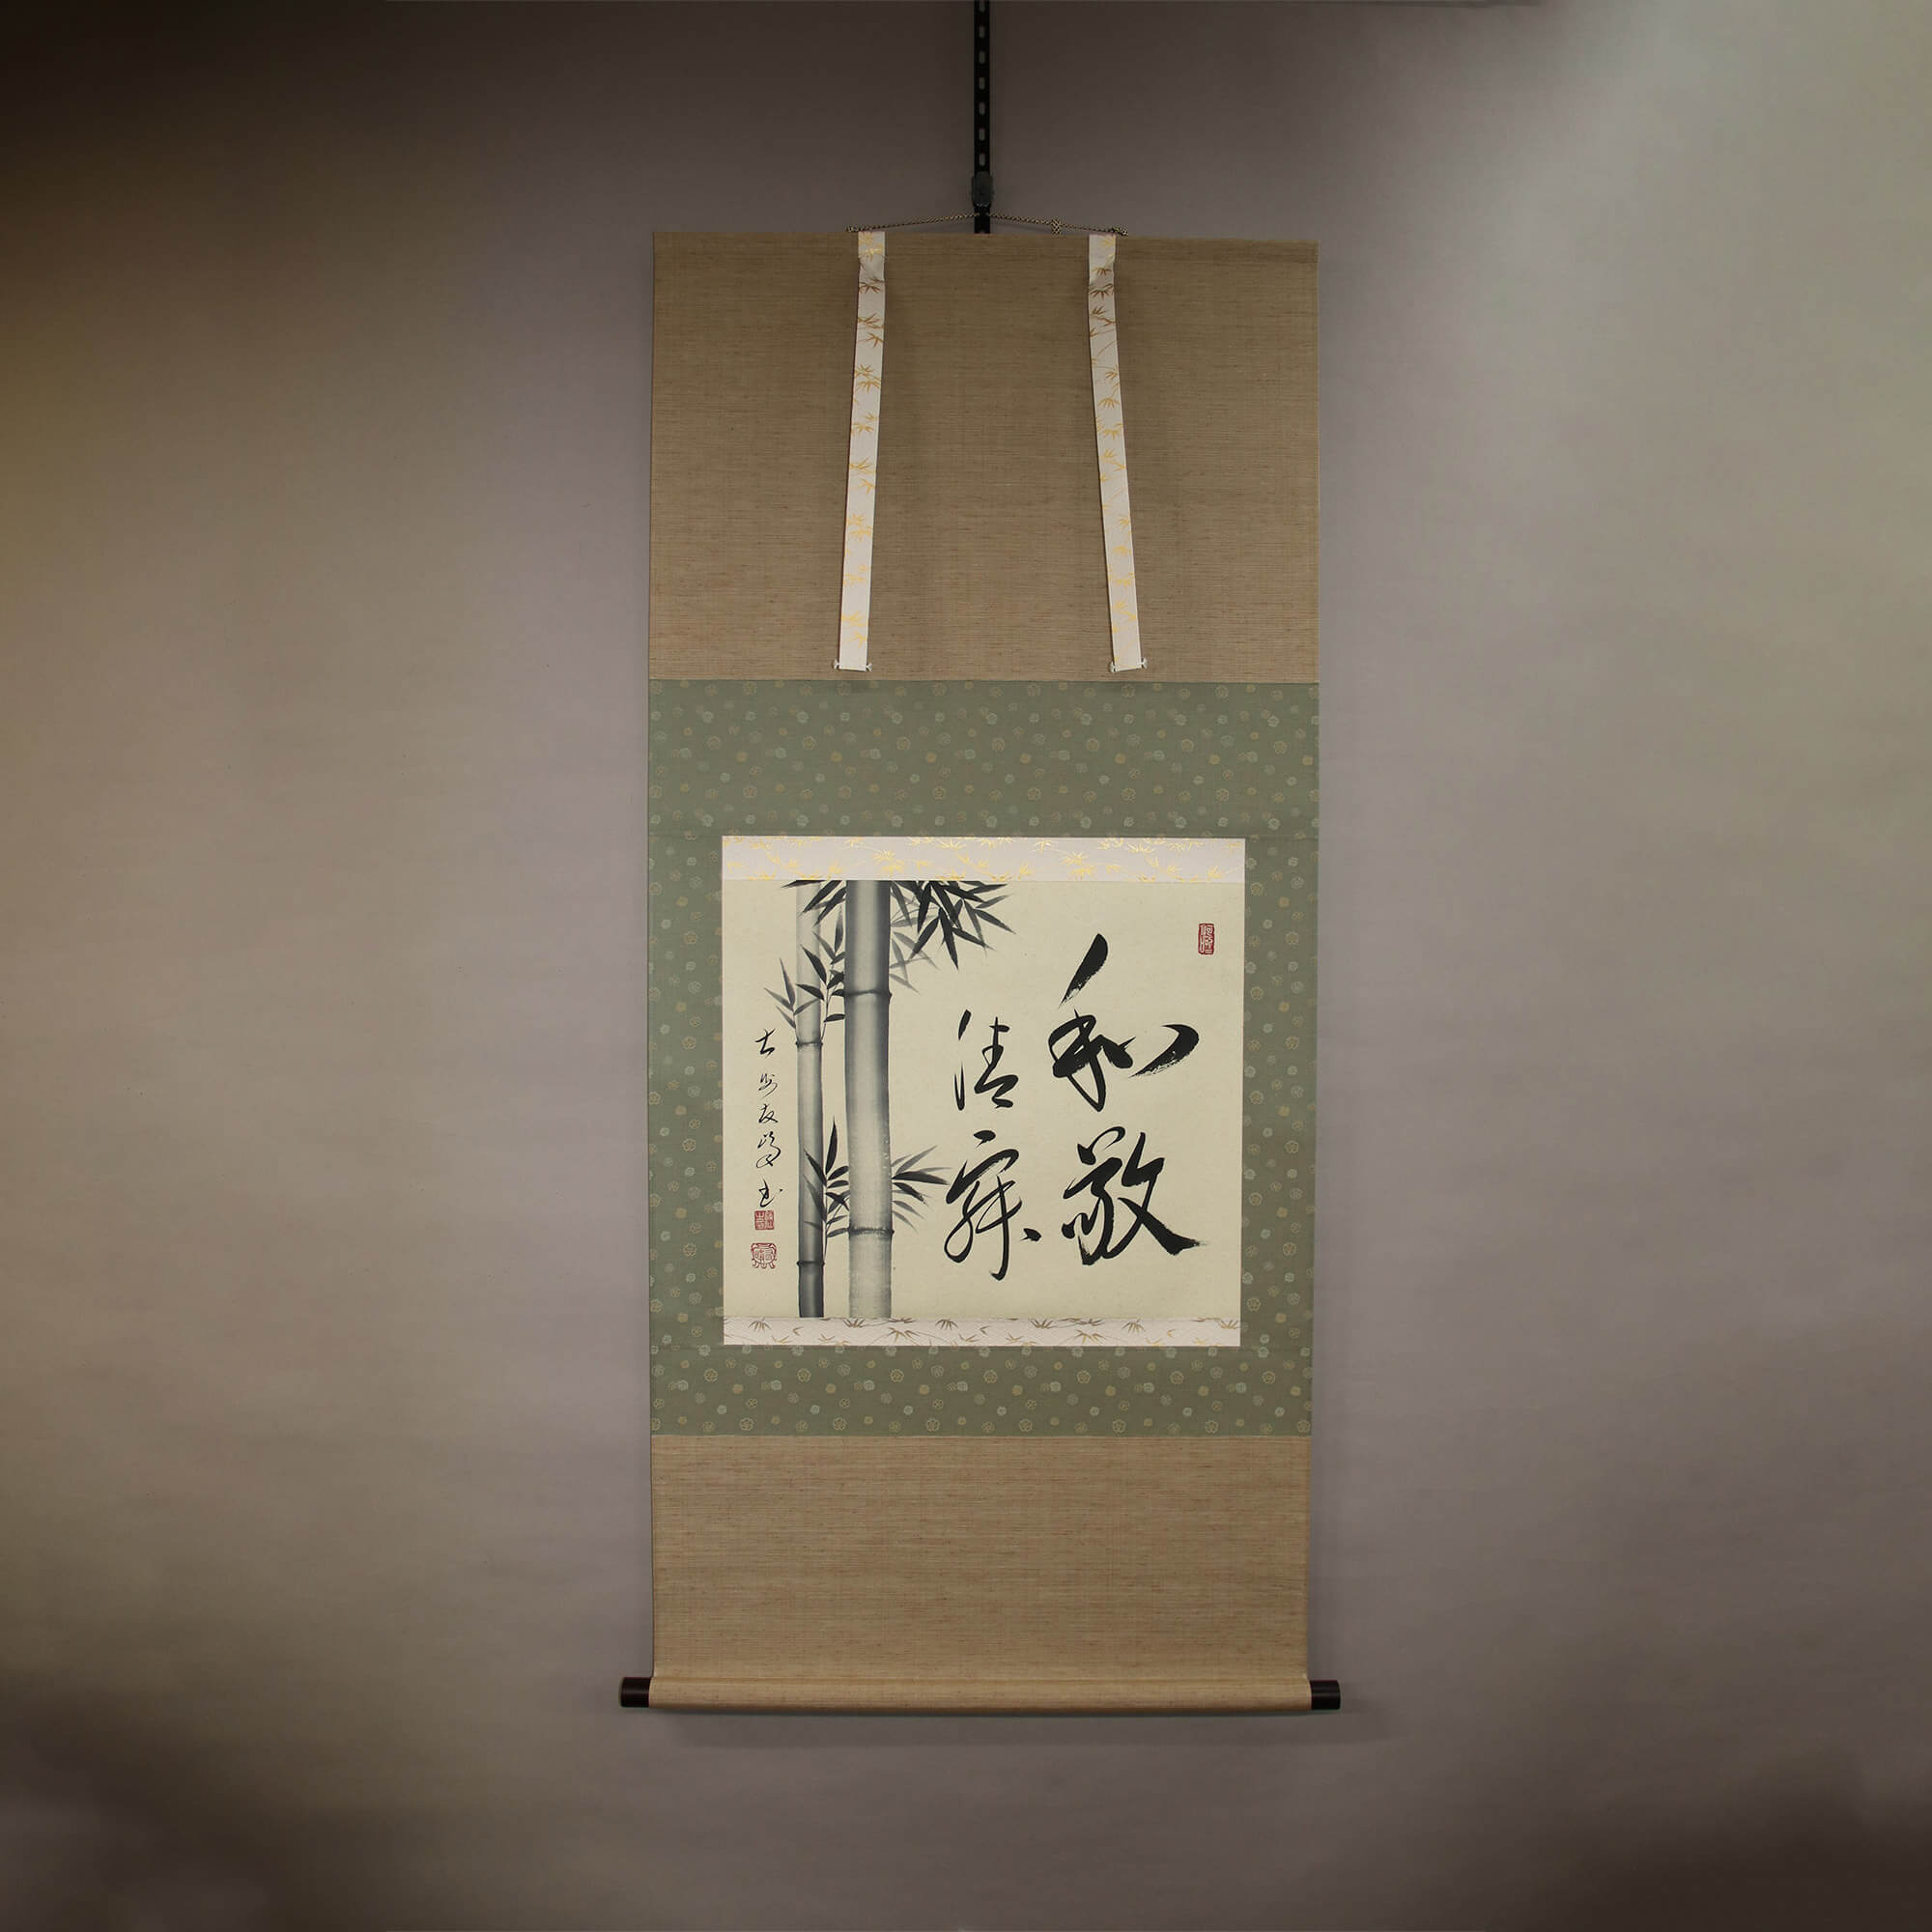 Calligraphy: Harmony, Respect, Purity and Tranquility & Bamboos / Takahashi Yūhō